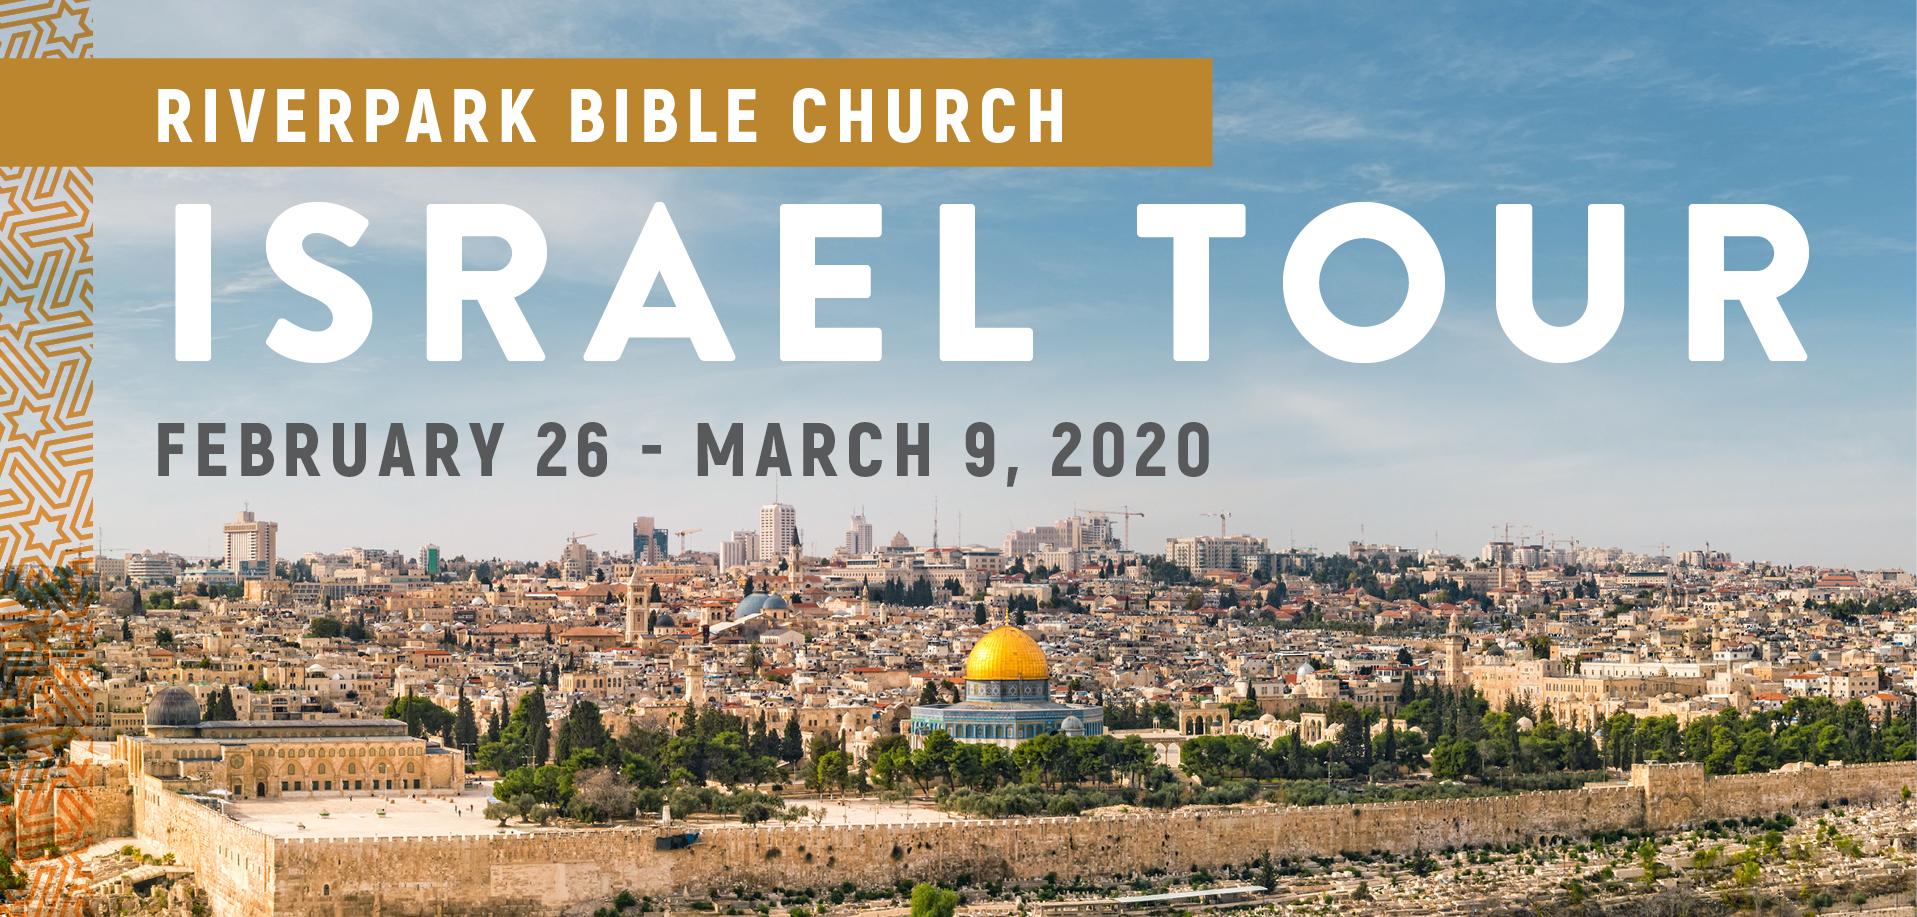 Take a Christian TourWOX with Riverpark Bible Church - Christian Tour to Israel - Feburary 26 - March 9, 2020